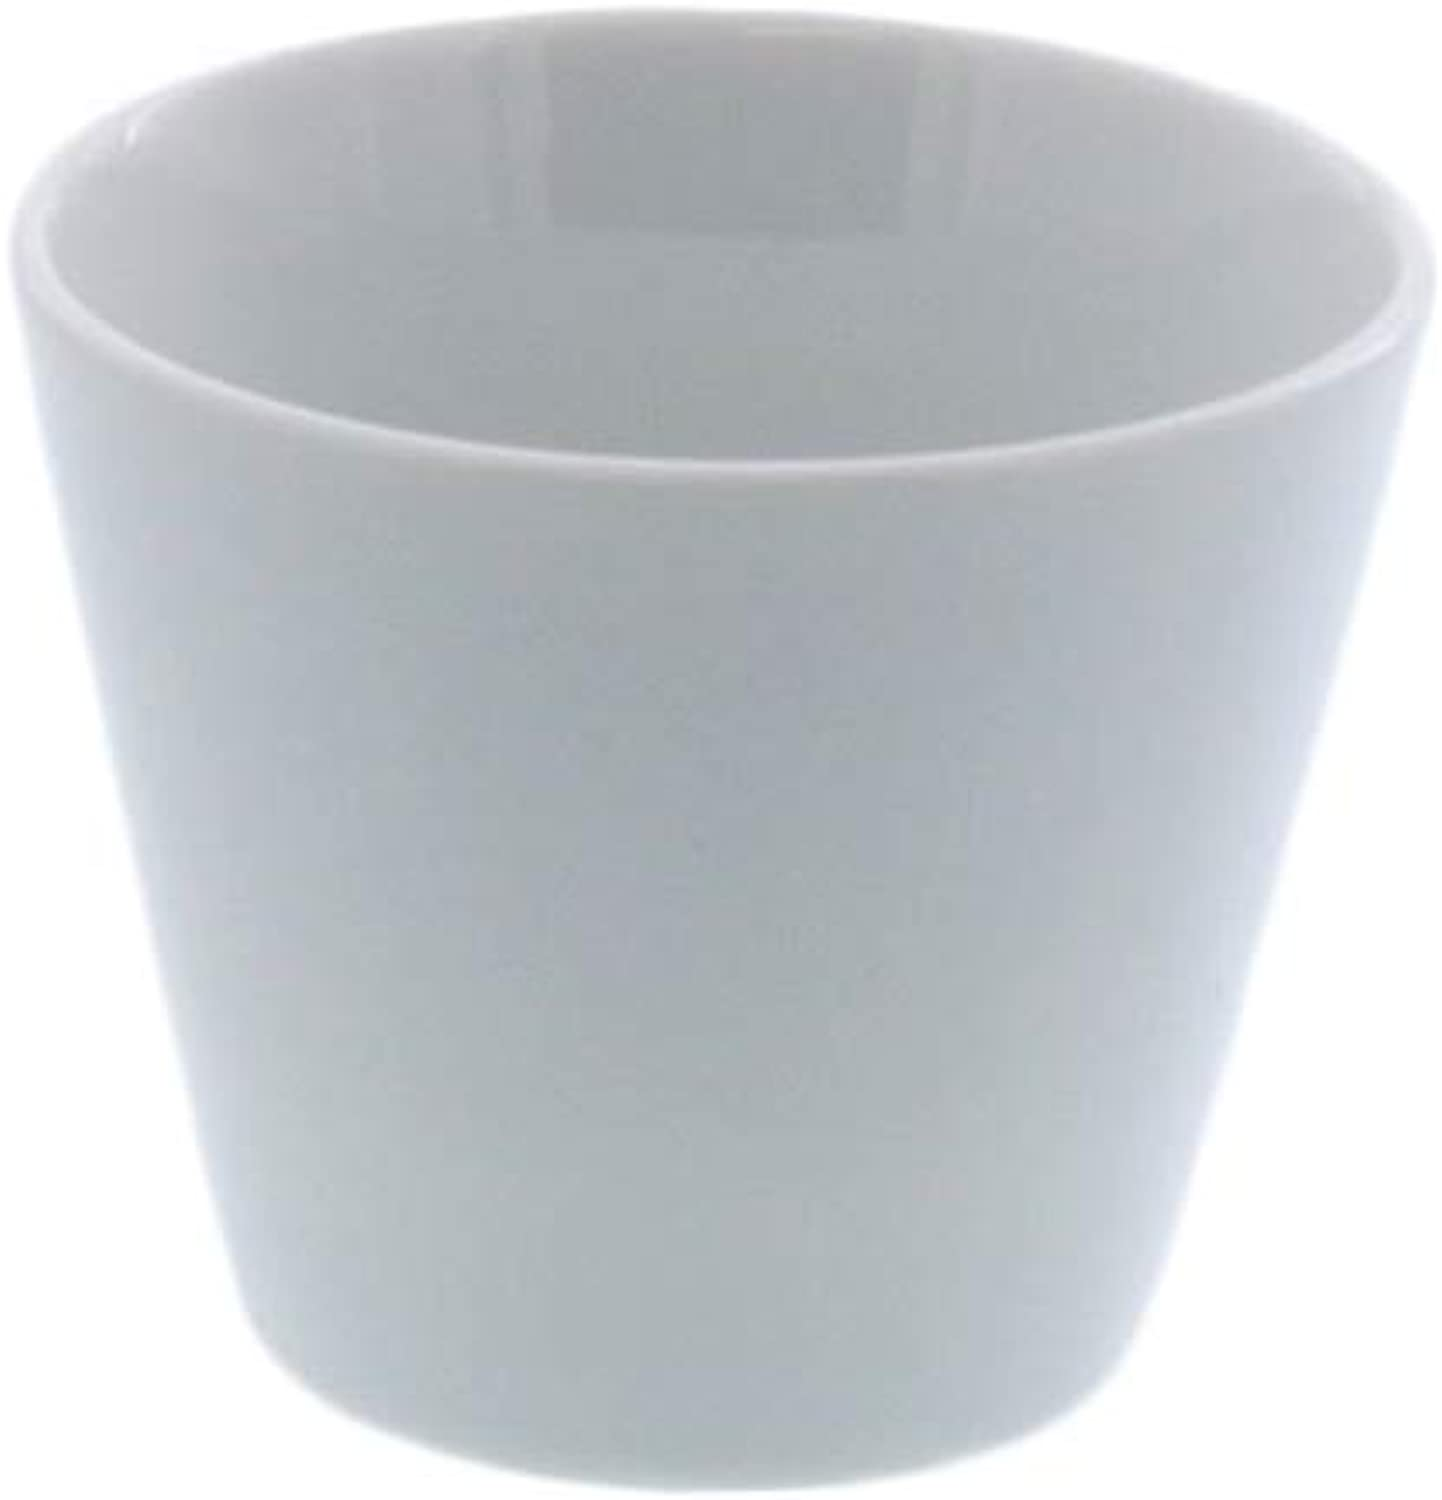 Table ware East Style MultiCup Clear White